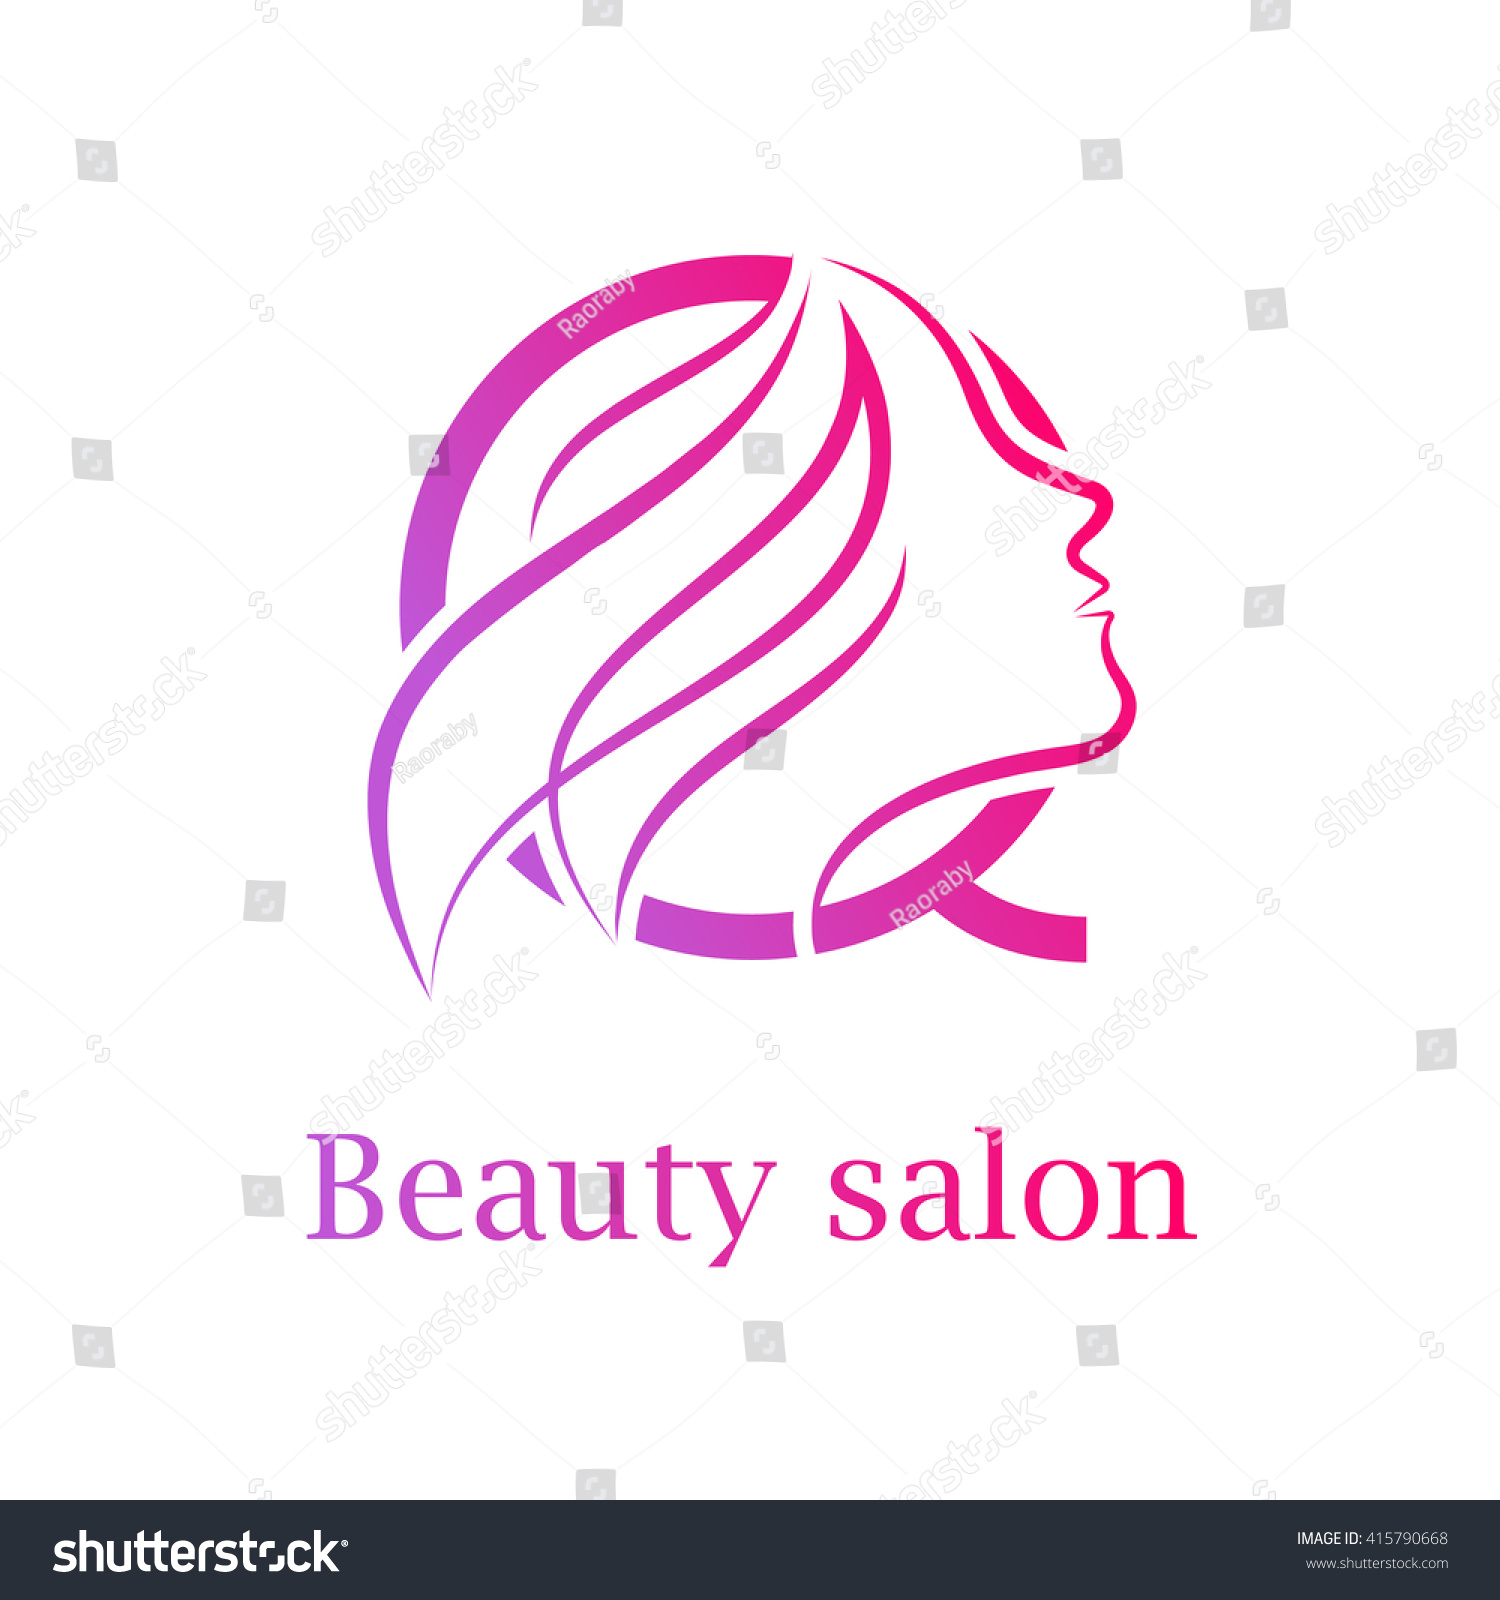 Abstract letter q logobeauty salon logo stock vector for Abstract beauty salon